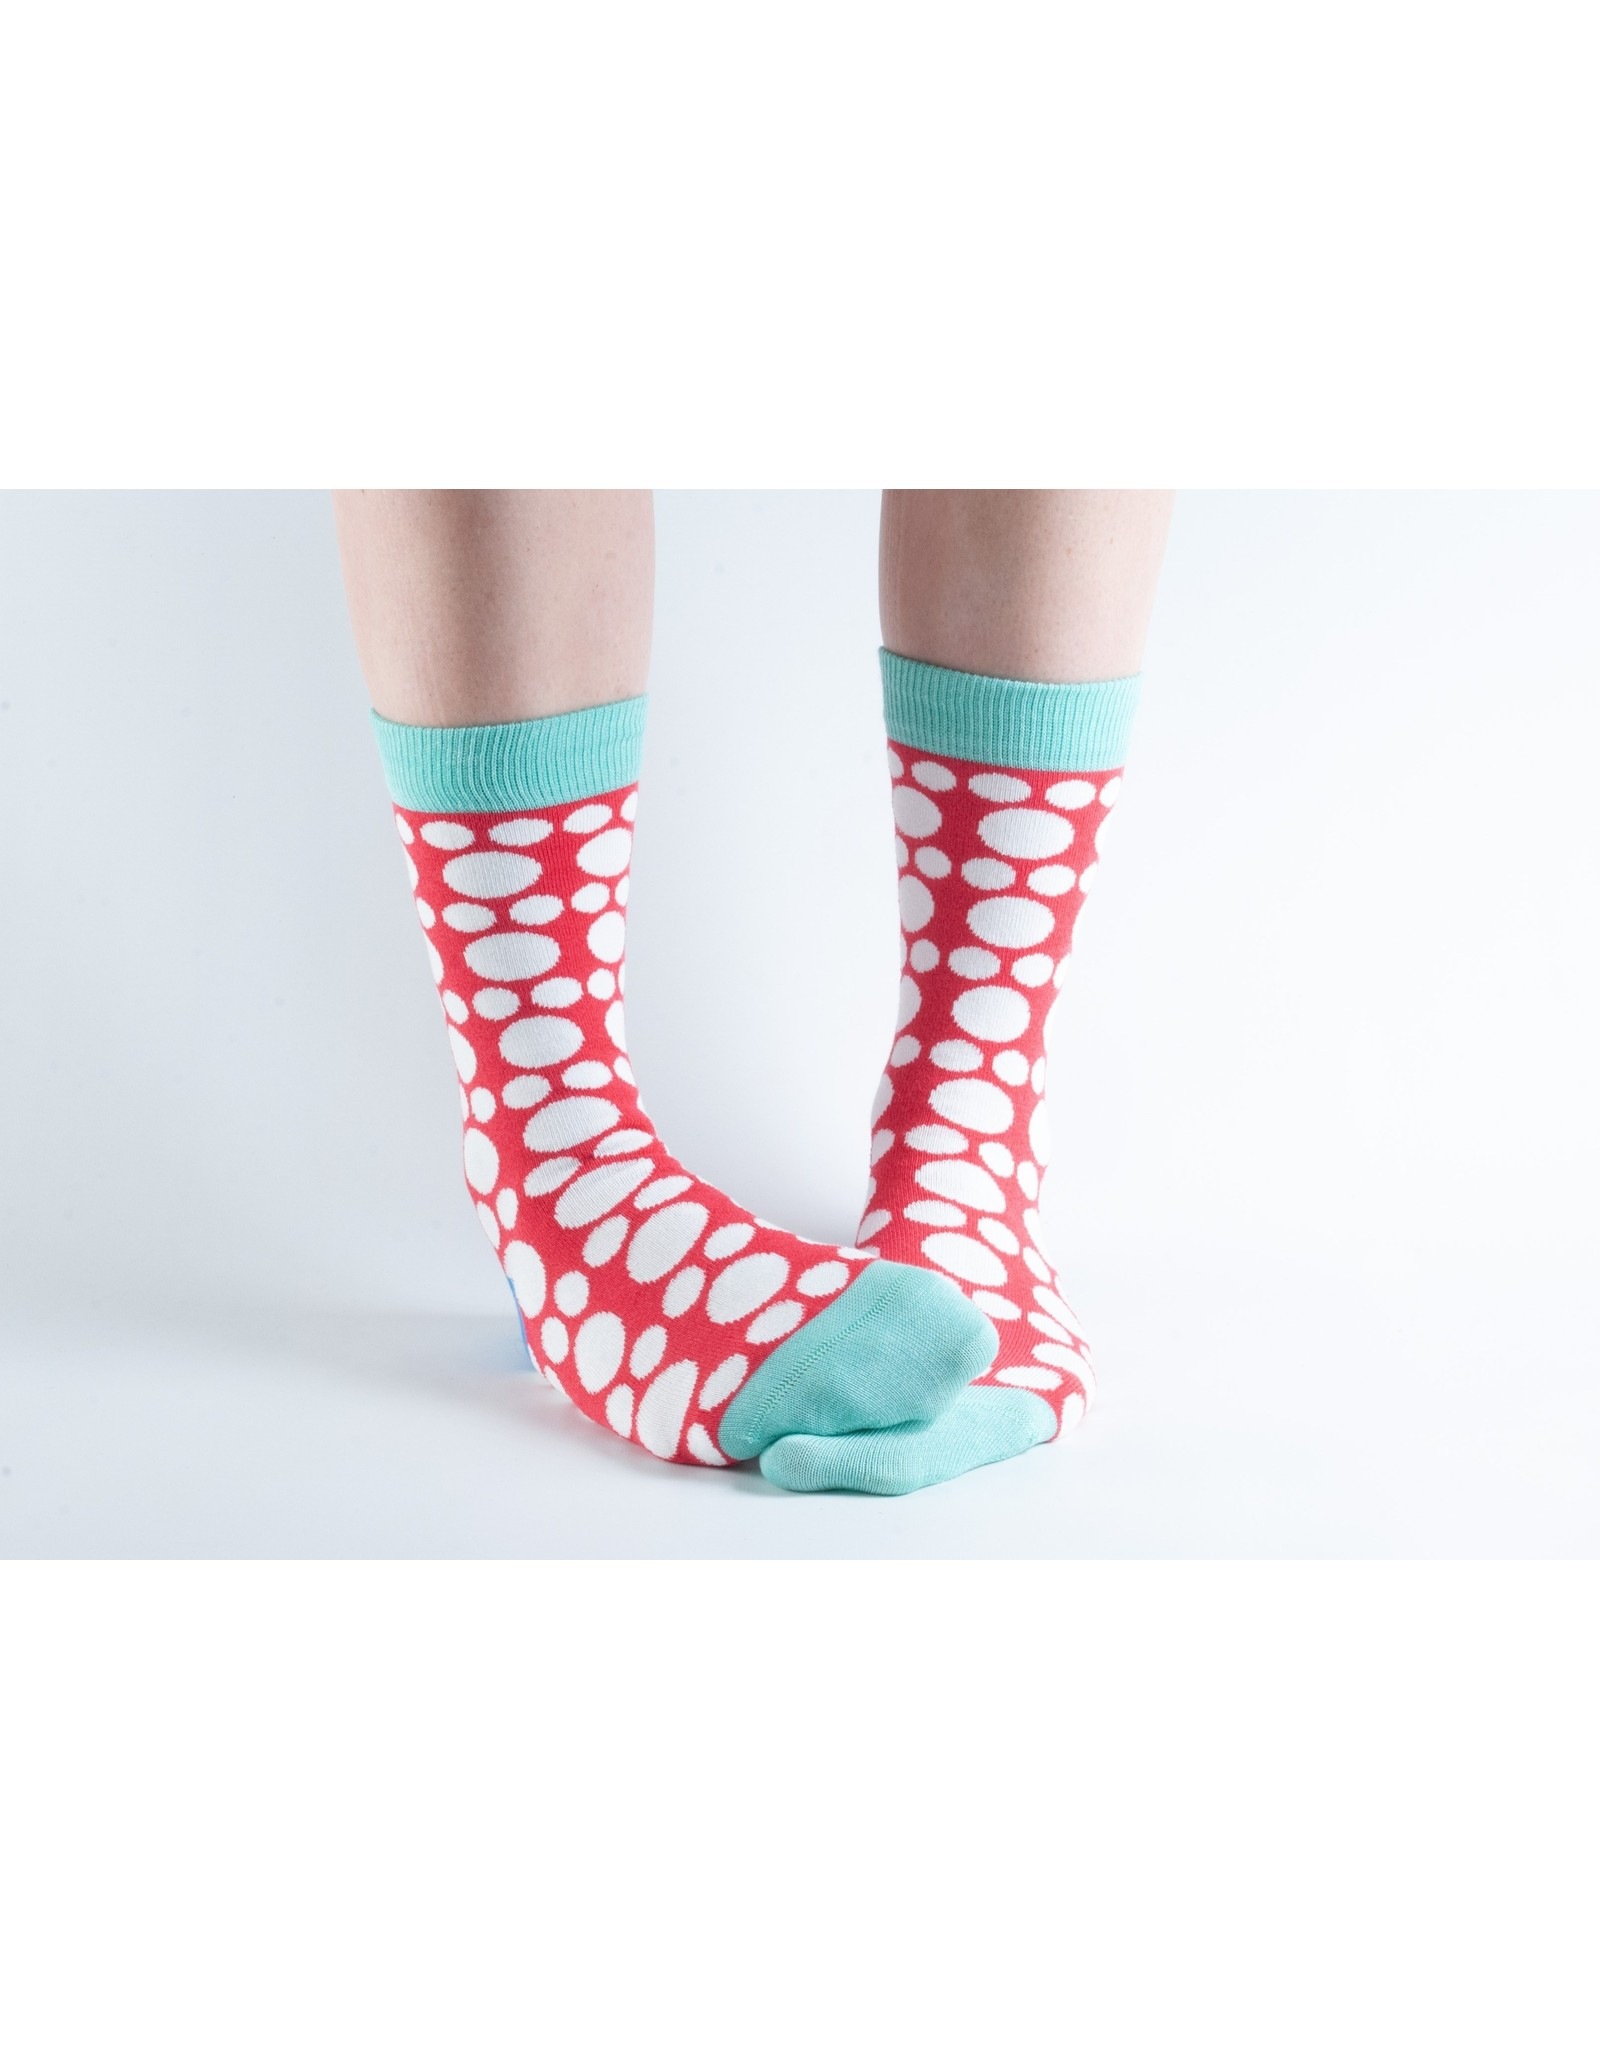 Doris & Dude Socks - red with dots (36-40)